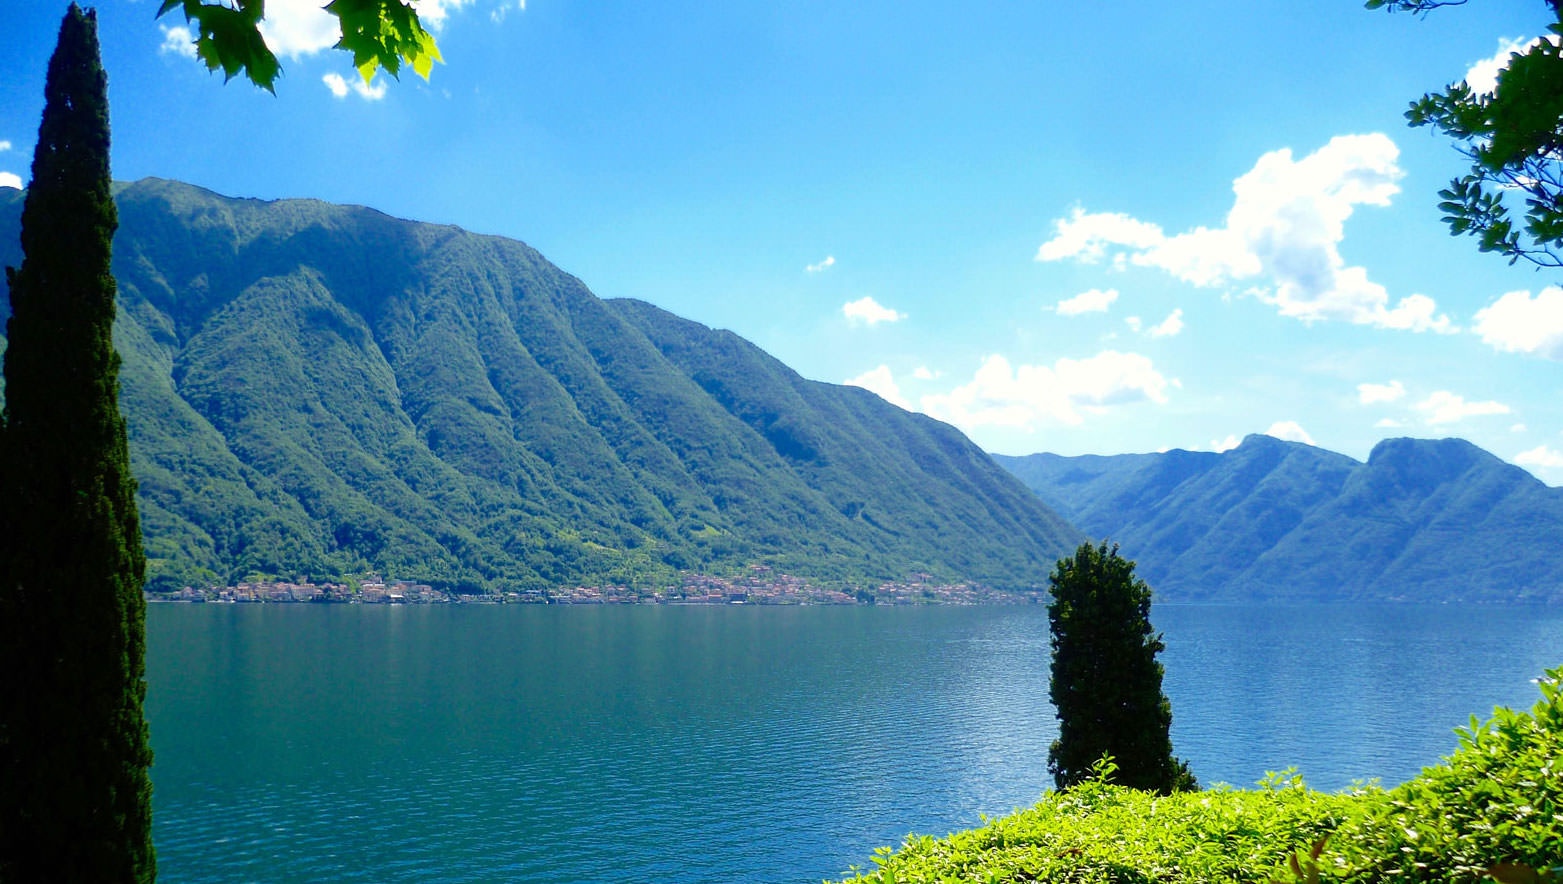 Explore the natural beauty of the Italian Lakes